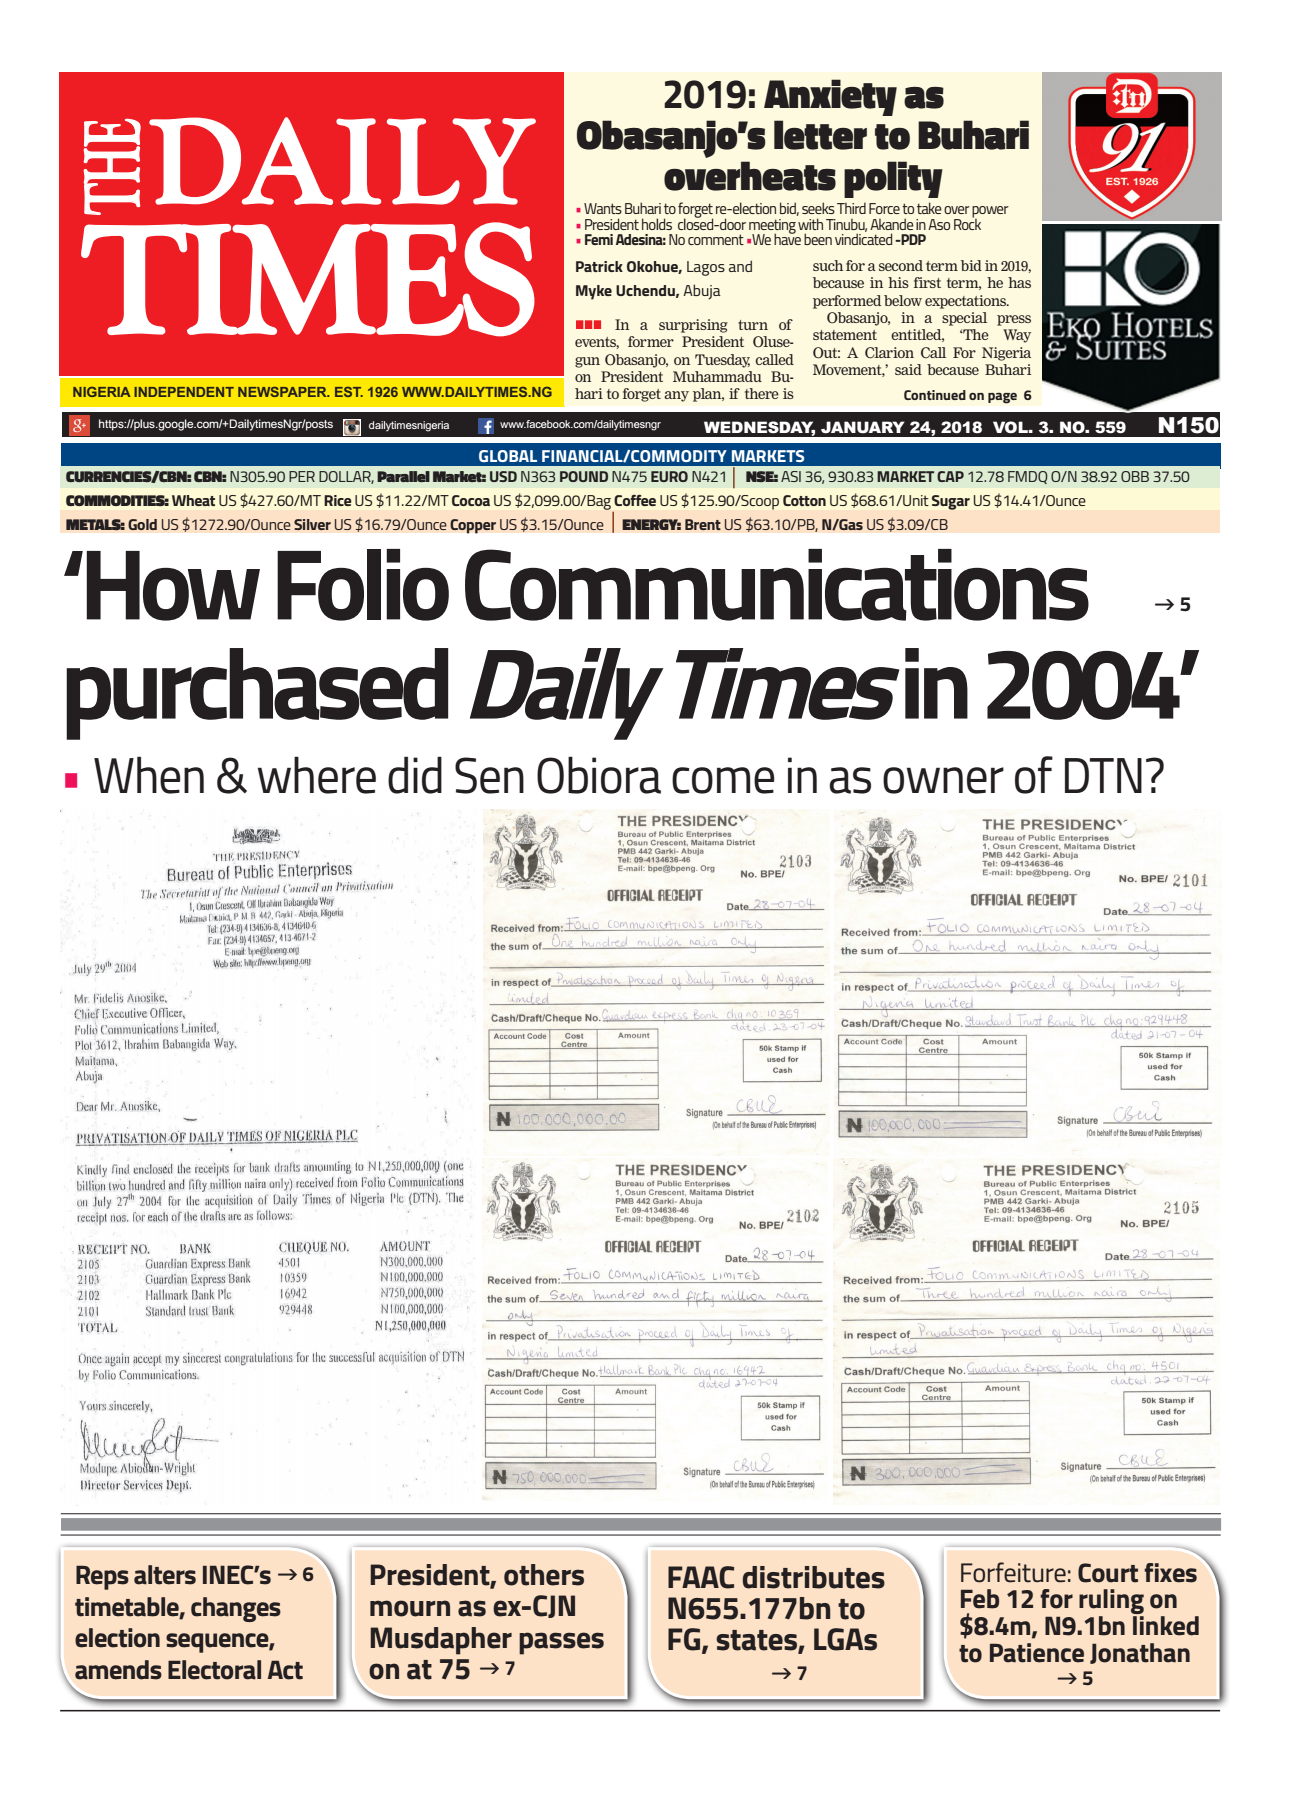 'How Folio Communications  purchased Daily Times in 2004'